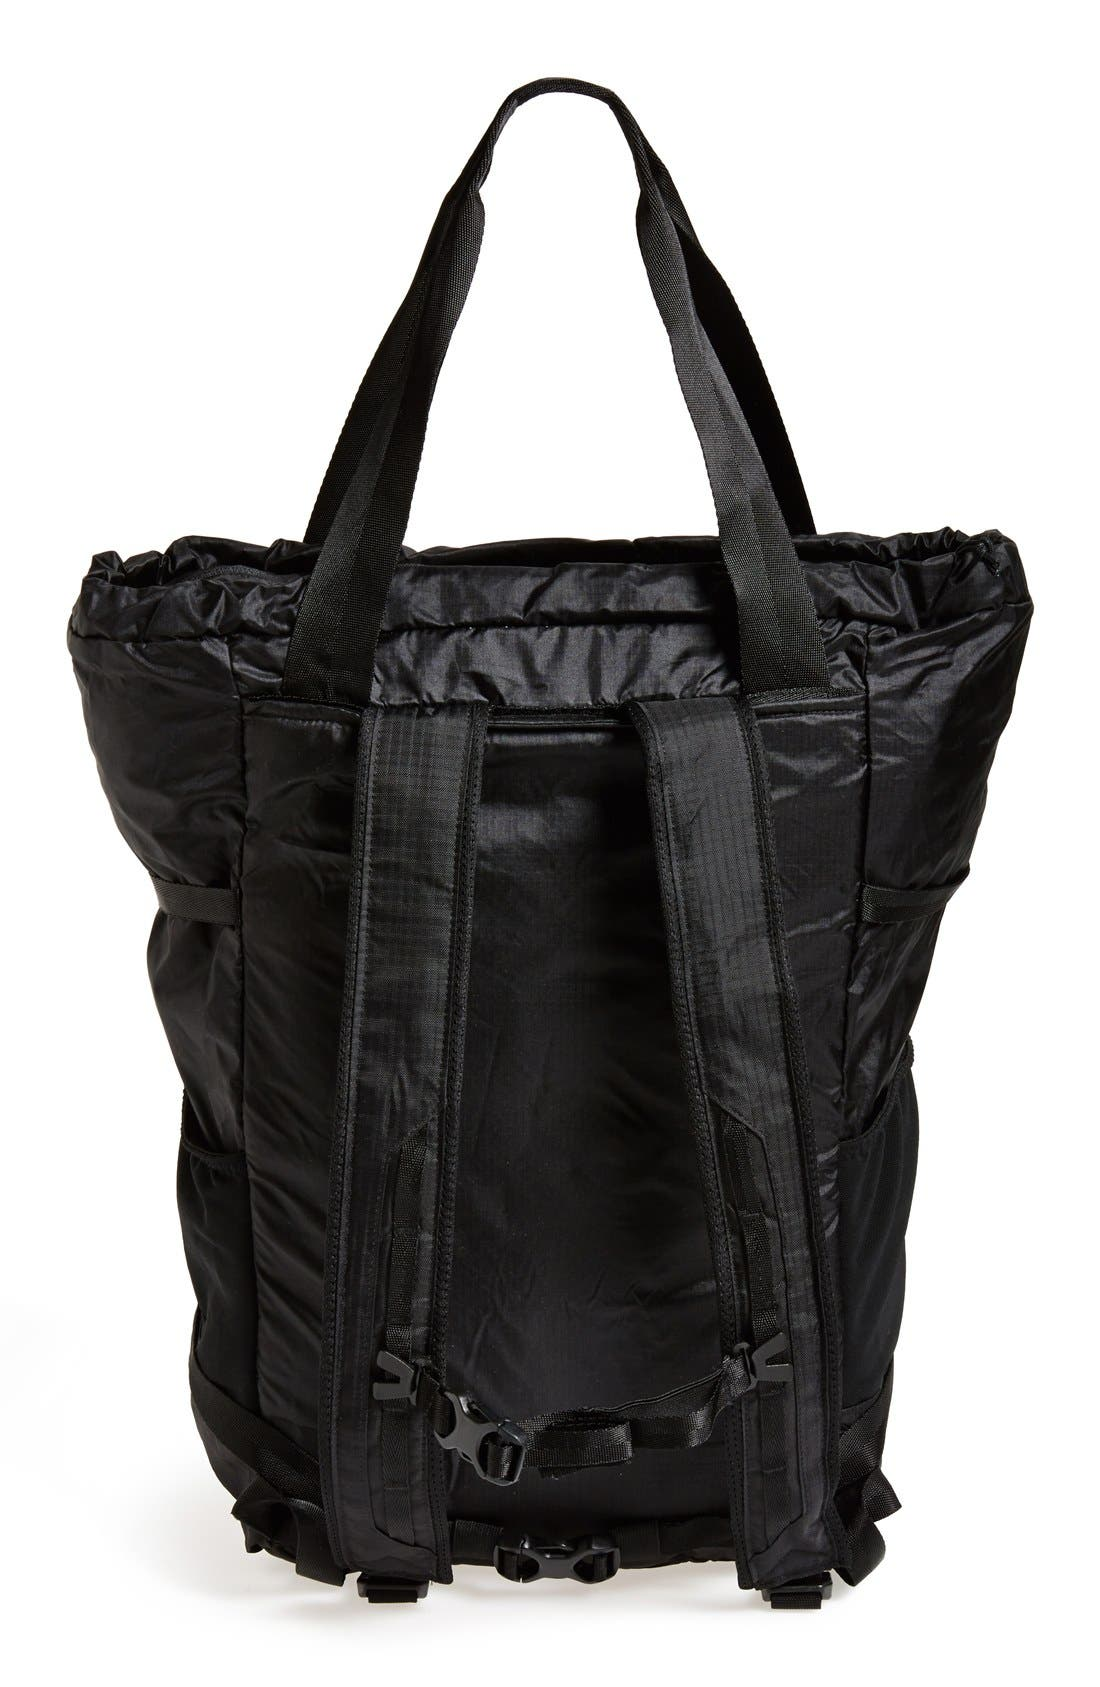 Lightweight Travel Tote Pack,                             Alternate thumbnail 3, color,                             Black